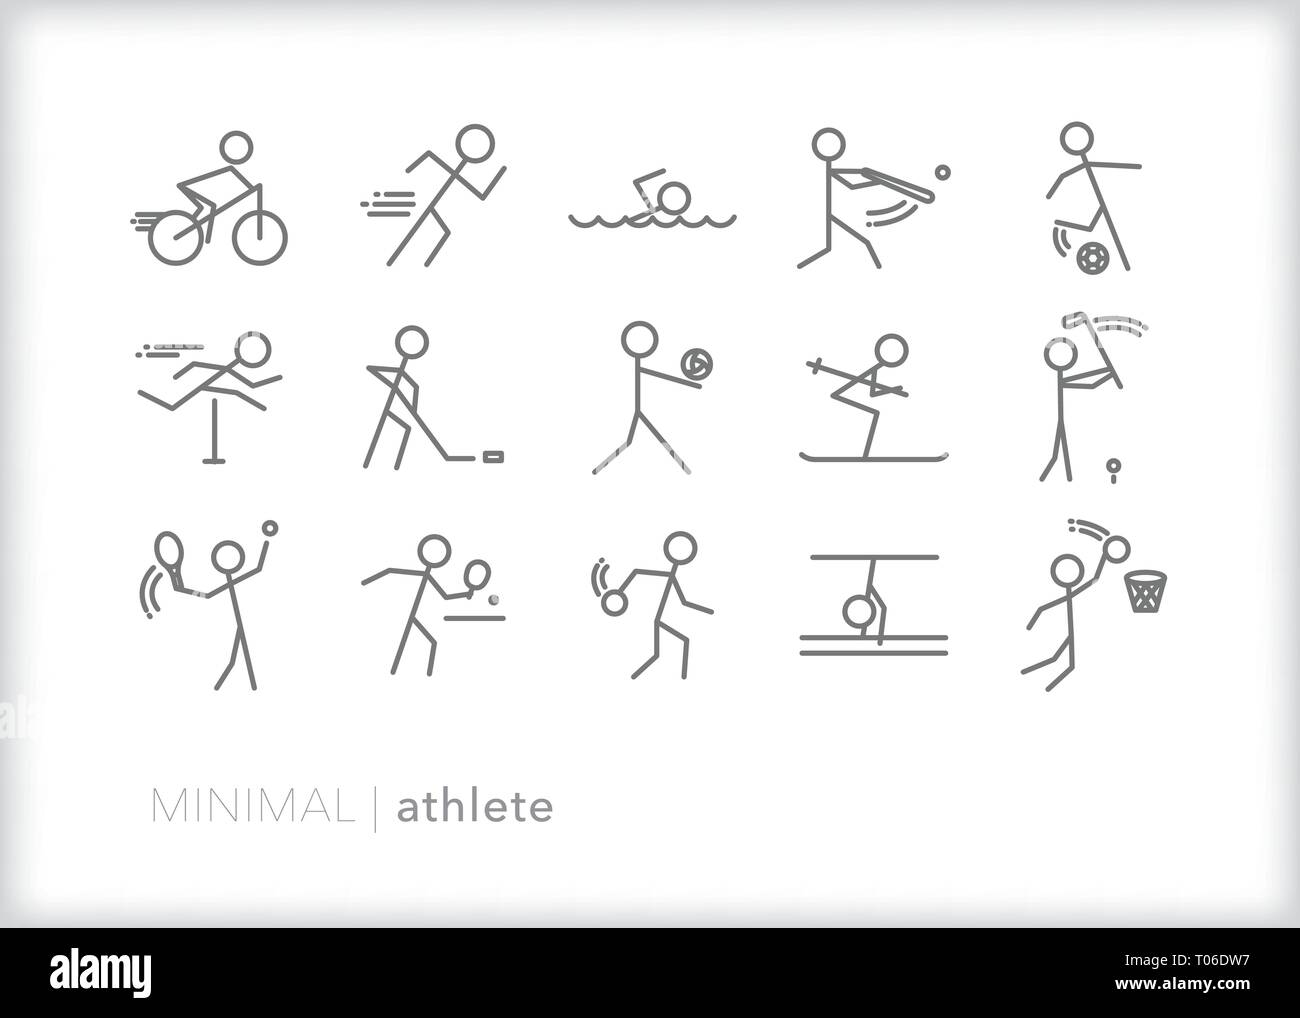 Set of 15 athlete line icons showing stick figures playing various sports with sporting equipment Stock Vector